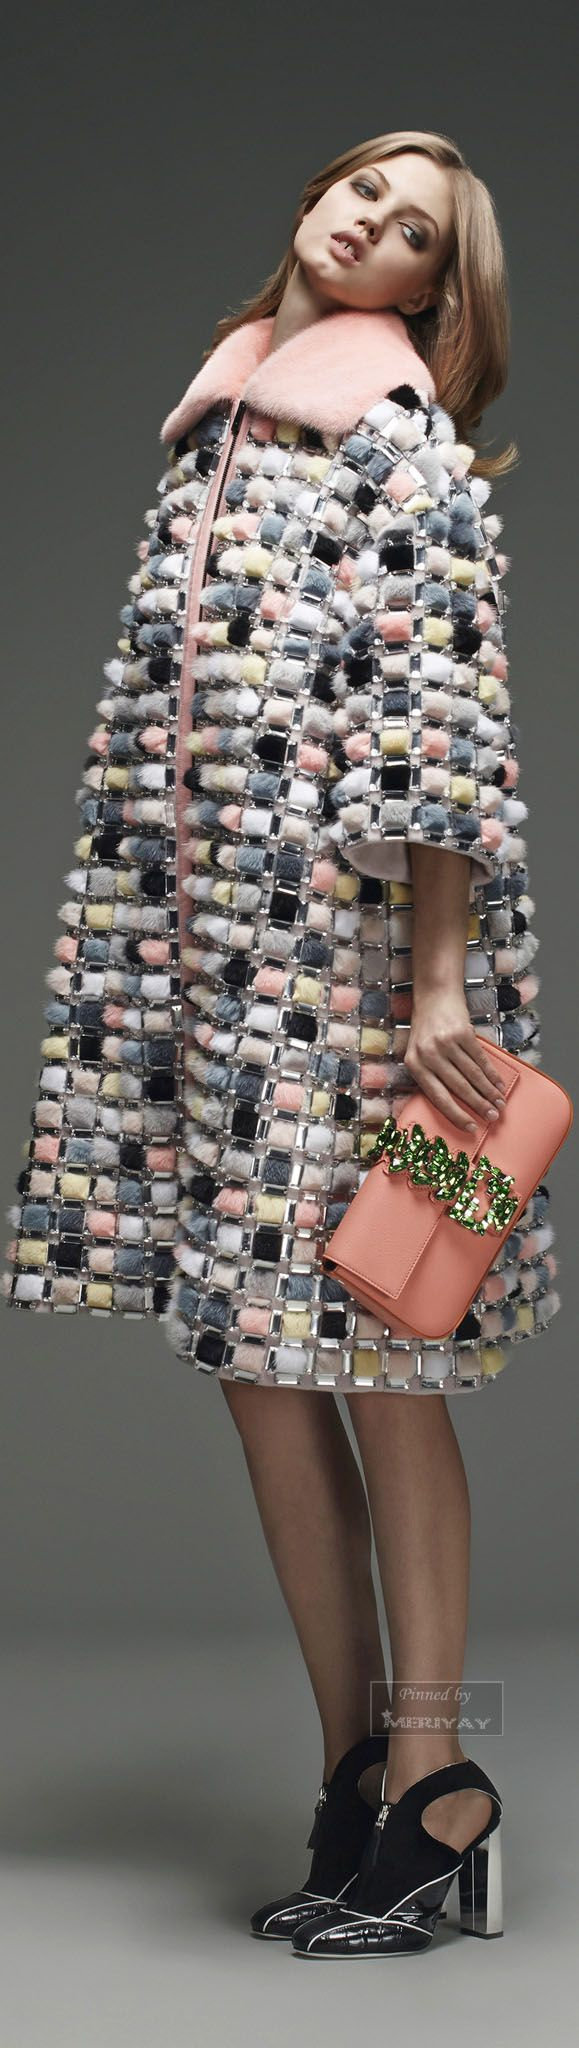 Fendi.Pre-Fall 2015. #fashion #style #hawanim www.hawanim.com